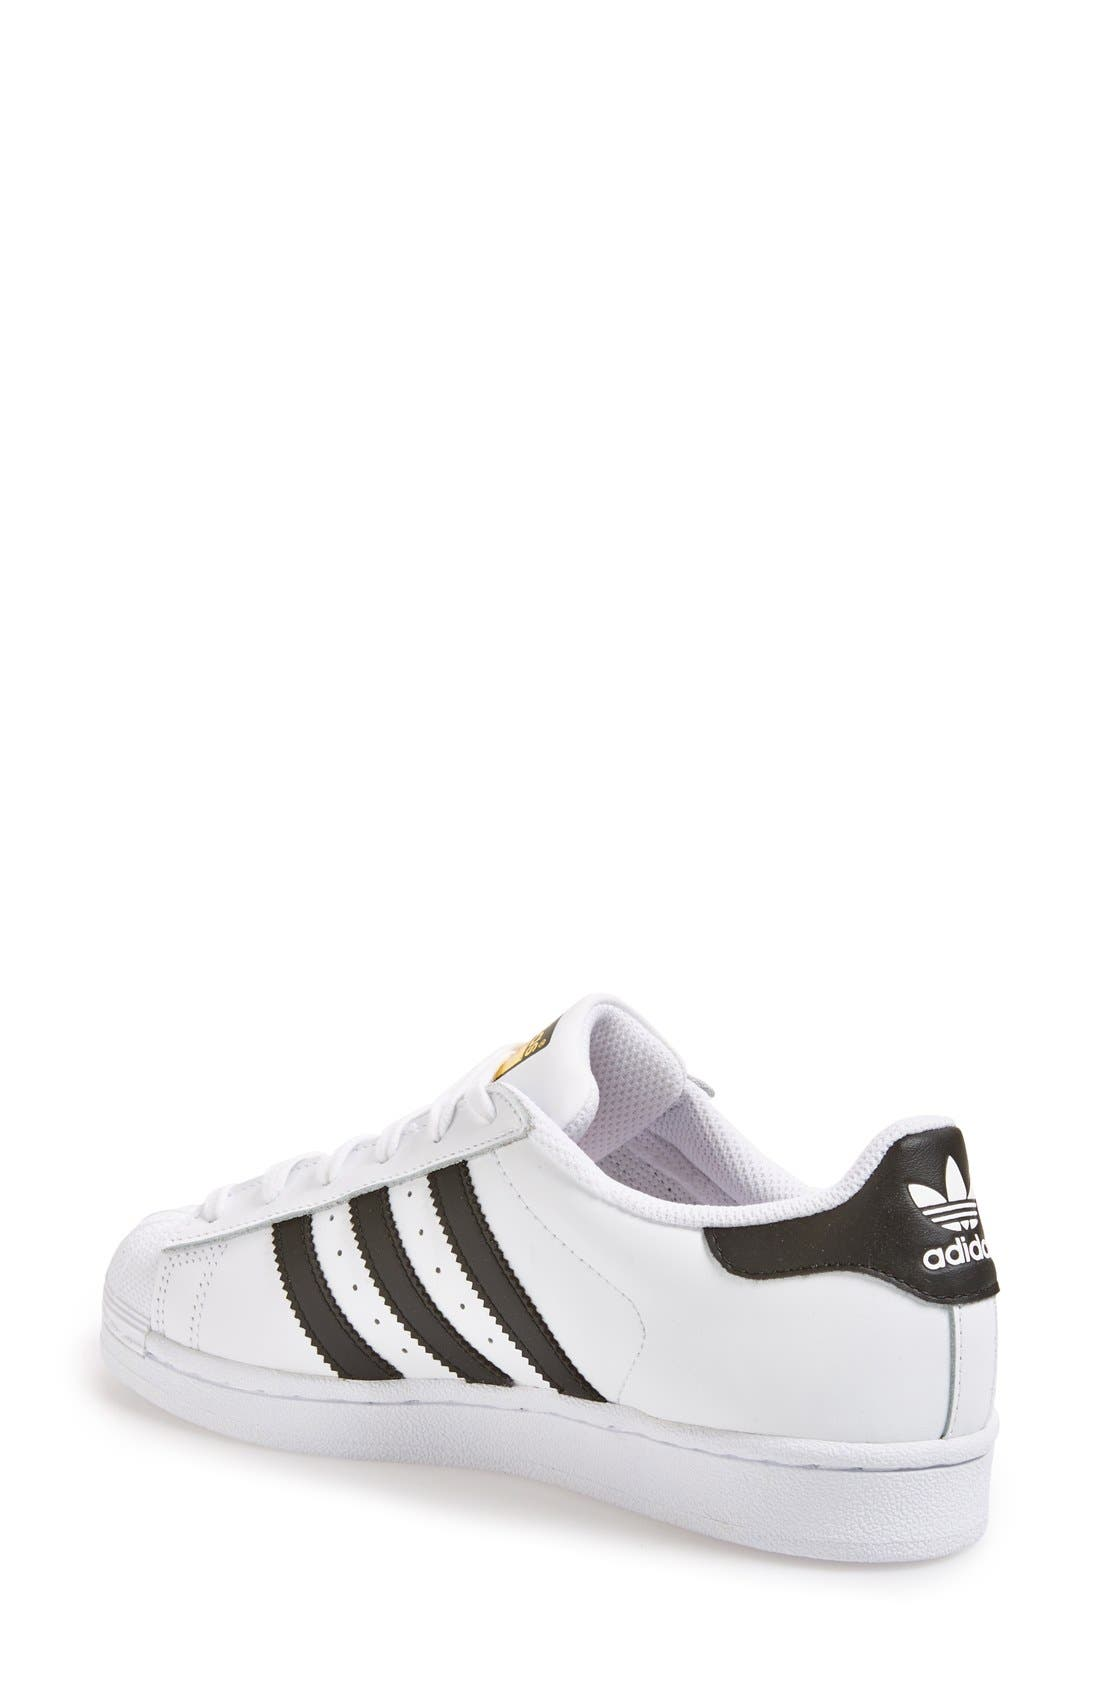 Superstar Sneaker,                             Alternate thumbnail 10, color,                             WHITE/ BLACK